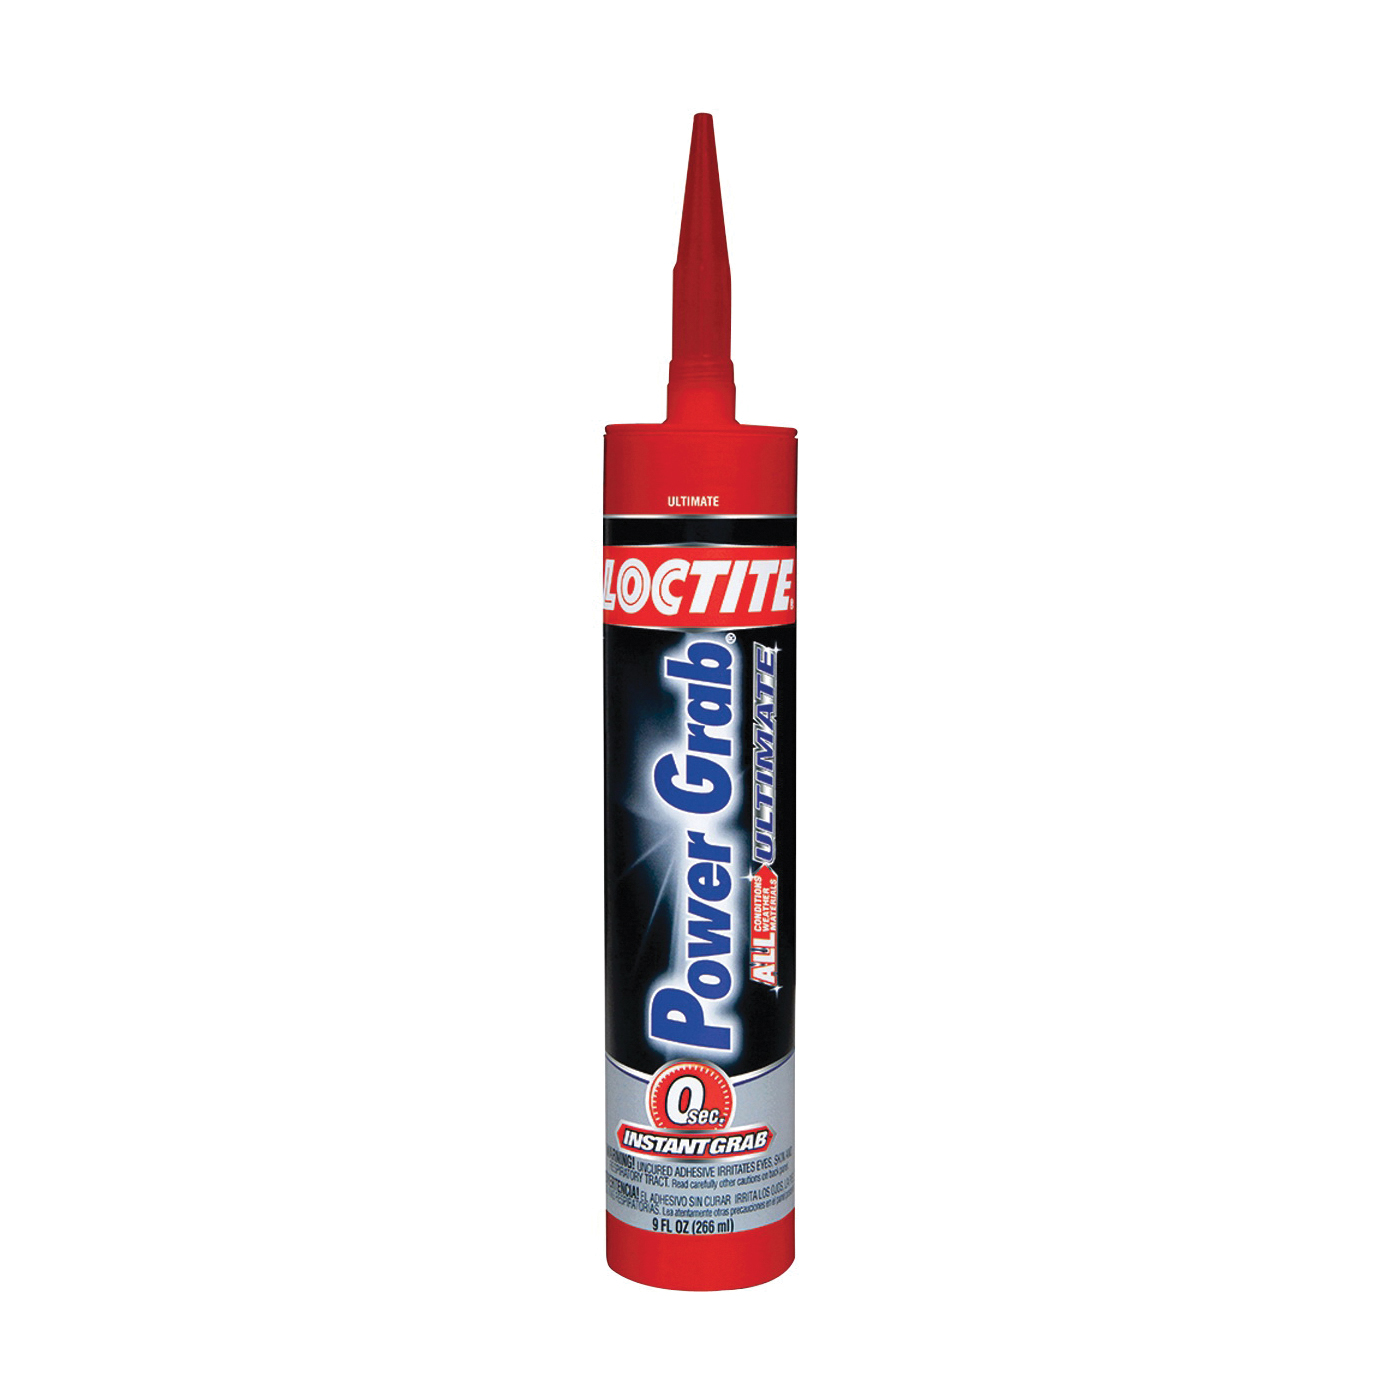 Picture of Loctite 1989550 Construction Adhesive, White, 9 oz Package, Cartridge